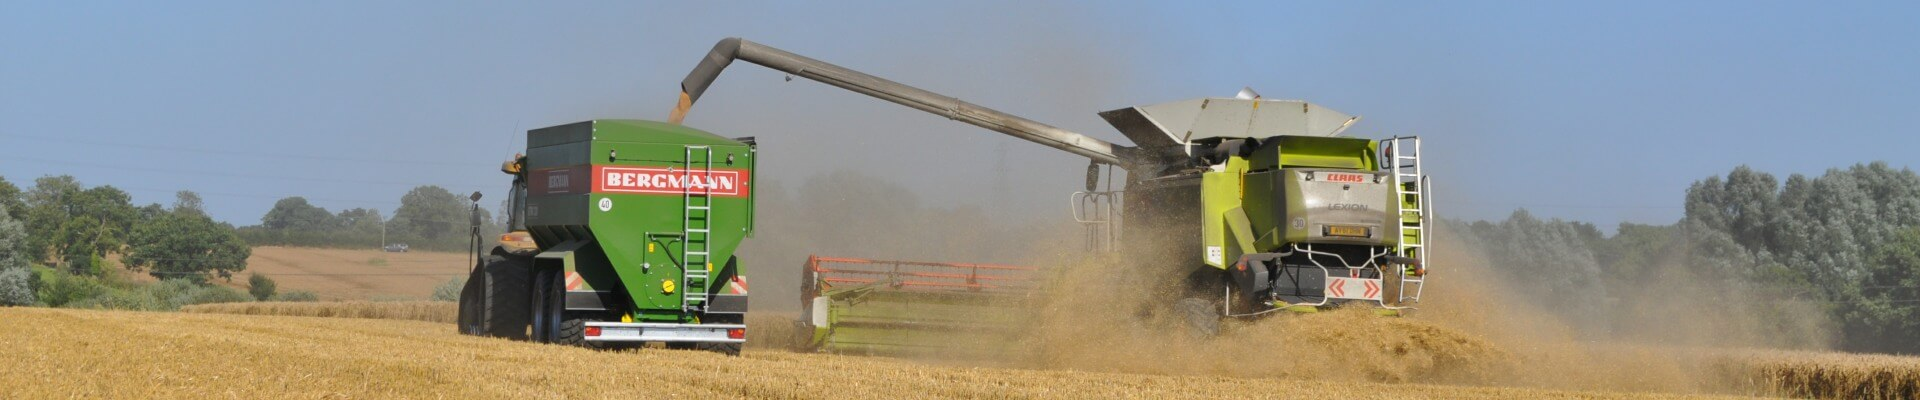 grain chaser bin bergmann wheat harvest with class combine